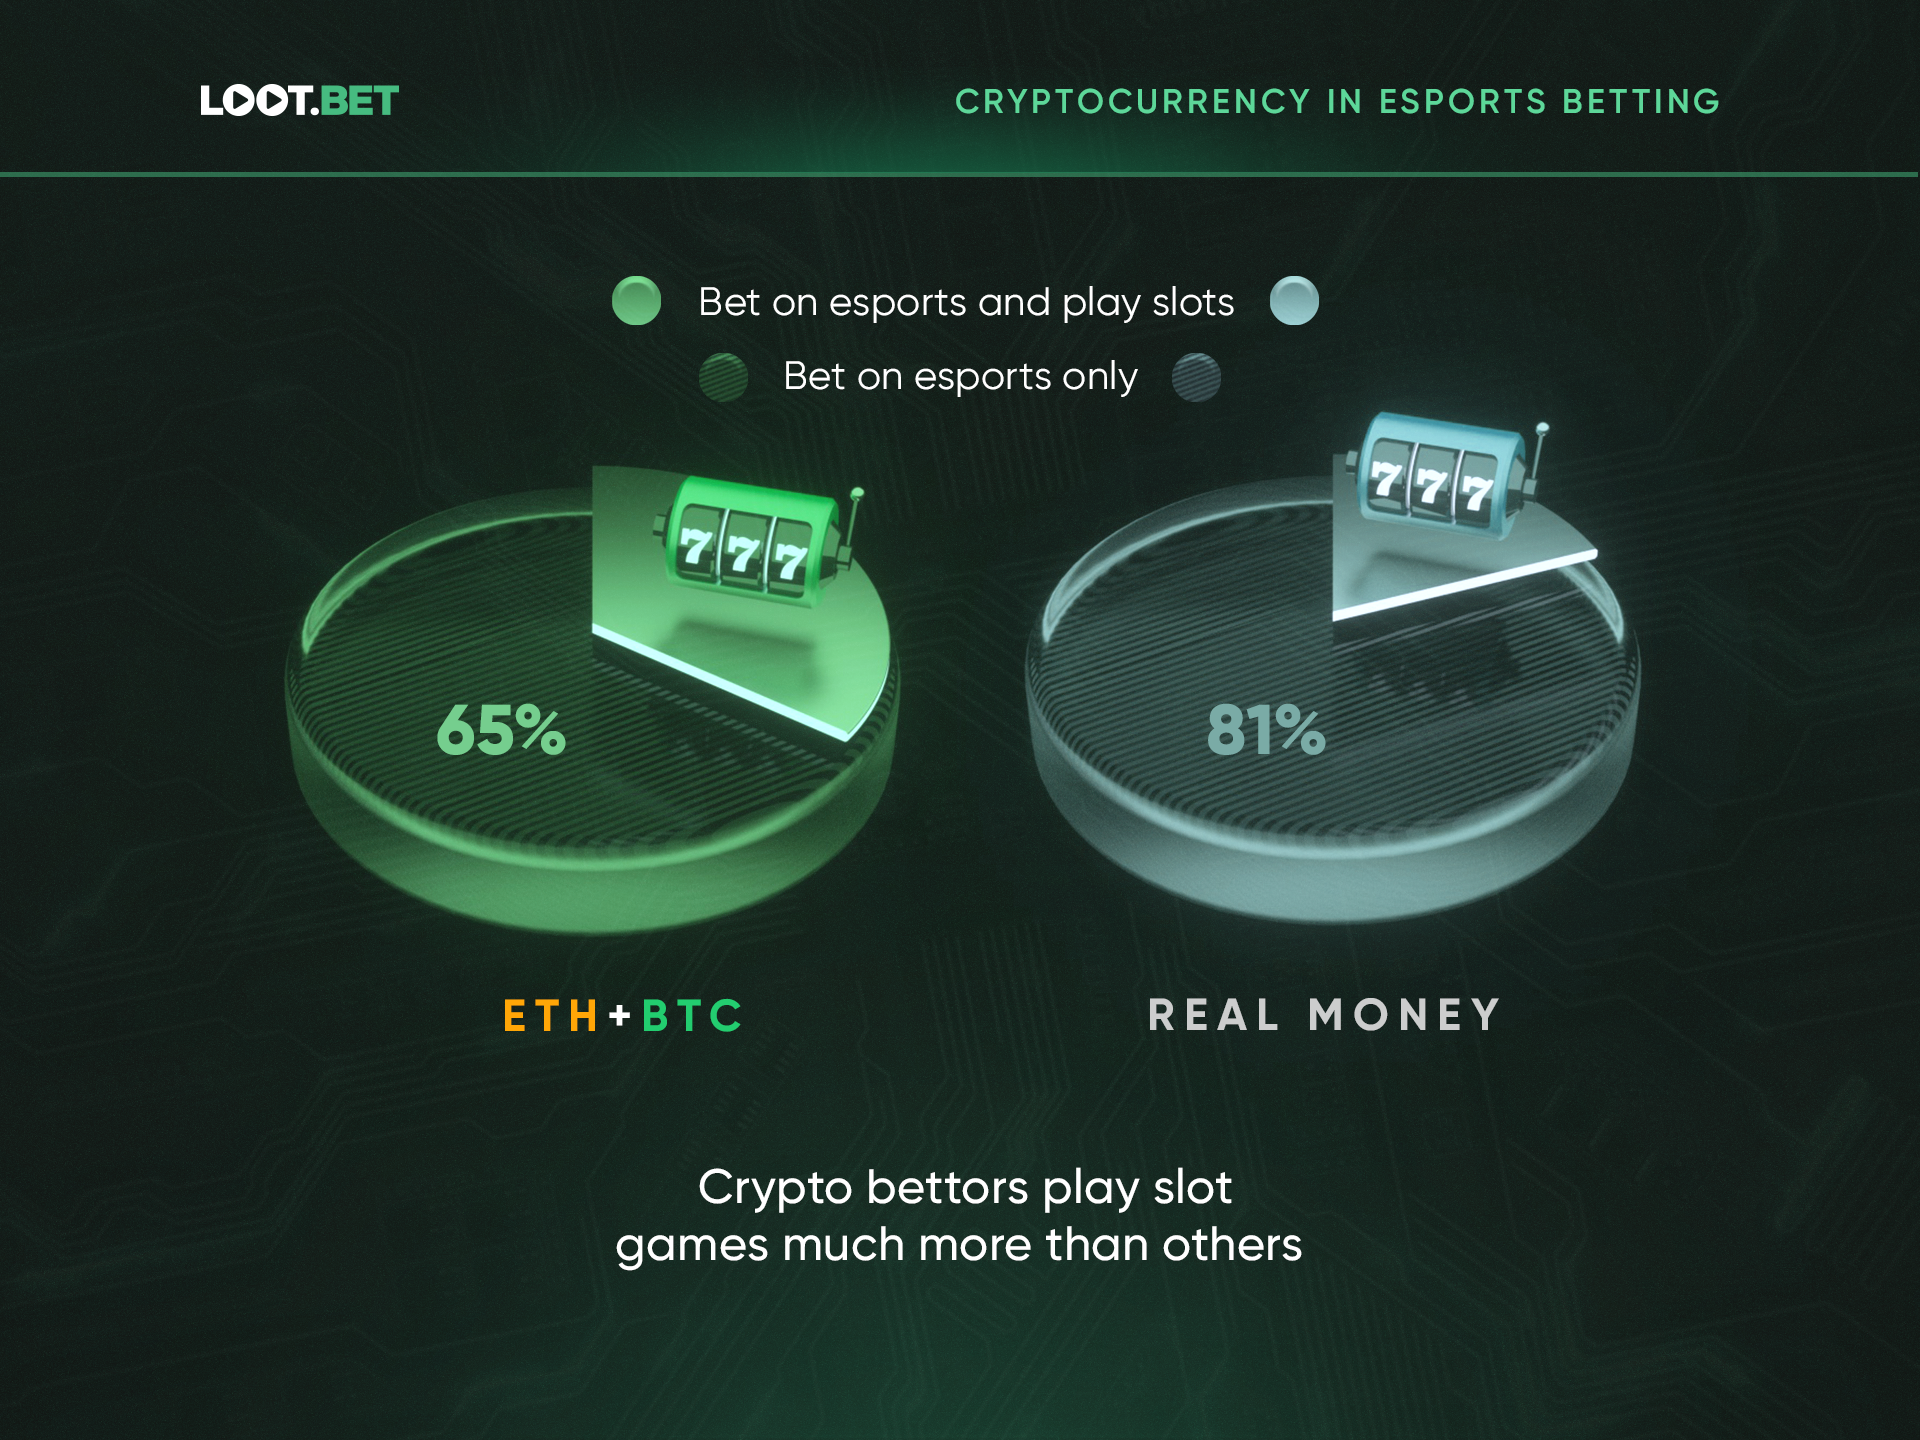 Crypto Esports Betting 3 - Research Reveals Cryptocurrency Owners to Be the Riskiest Esports Bettors